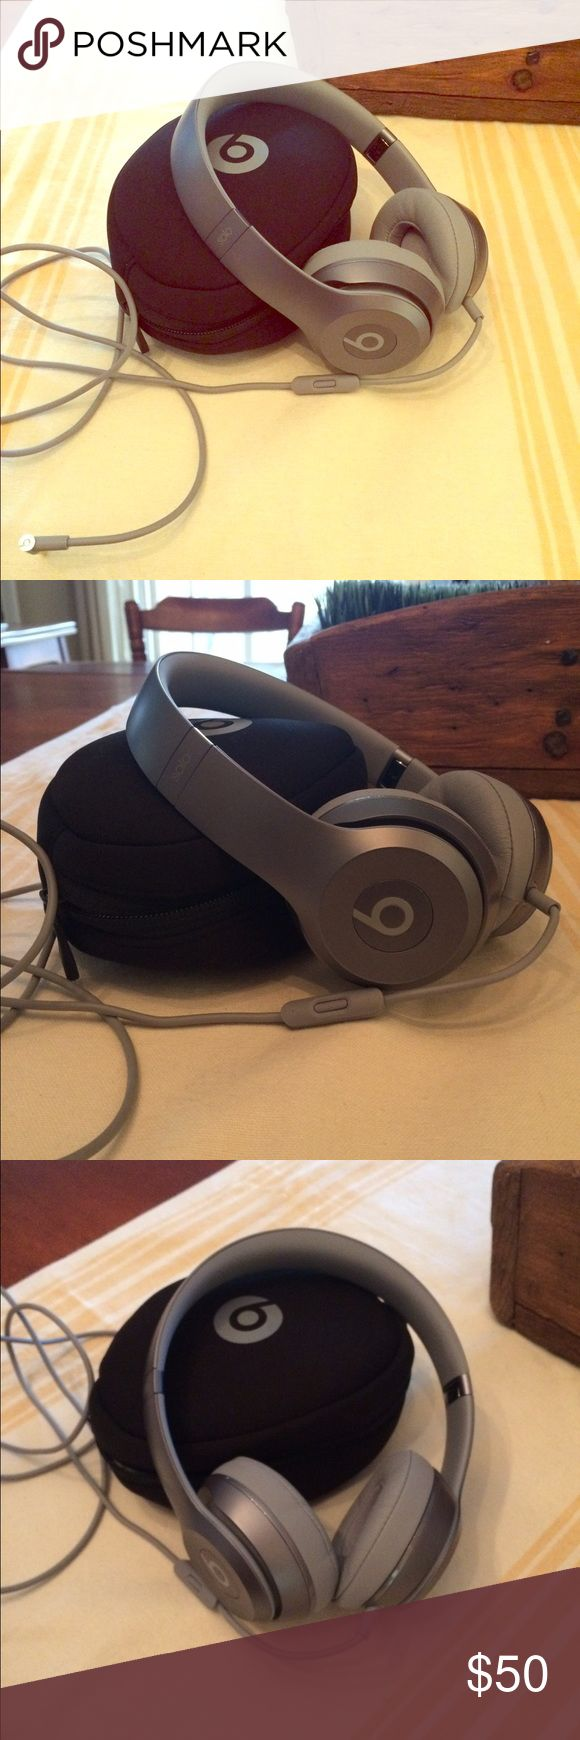 Beats by Dr Dre, grey headphones, never used Brand new Beats by Dr Dre headphones.  With case in excellent condition beats by dr dre Accessories